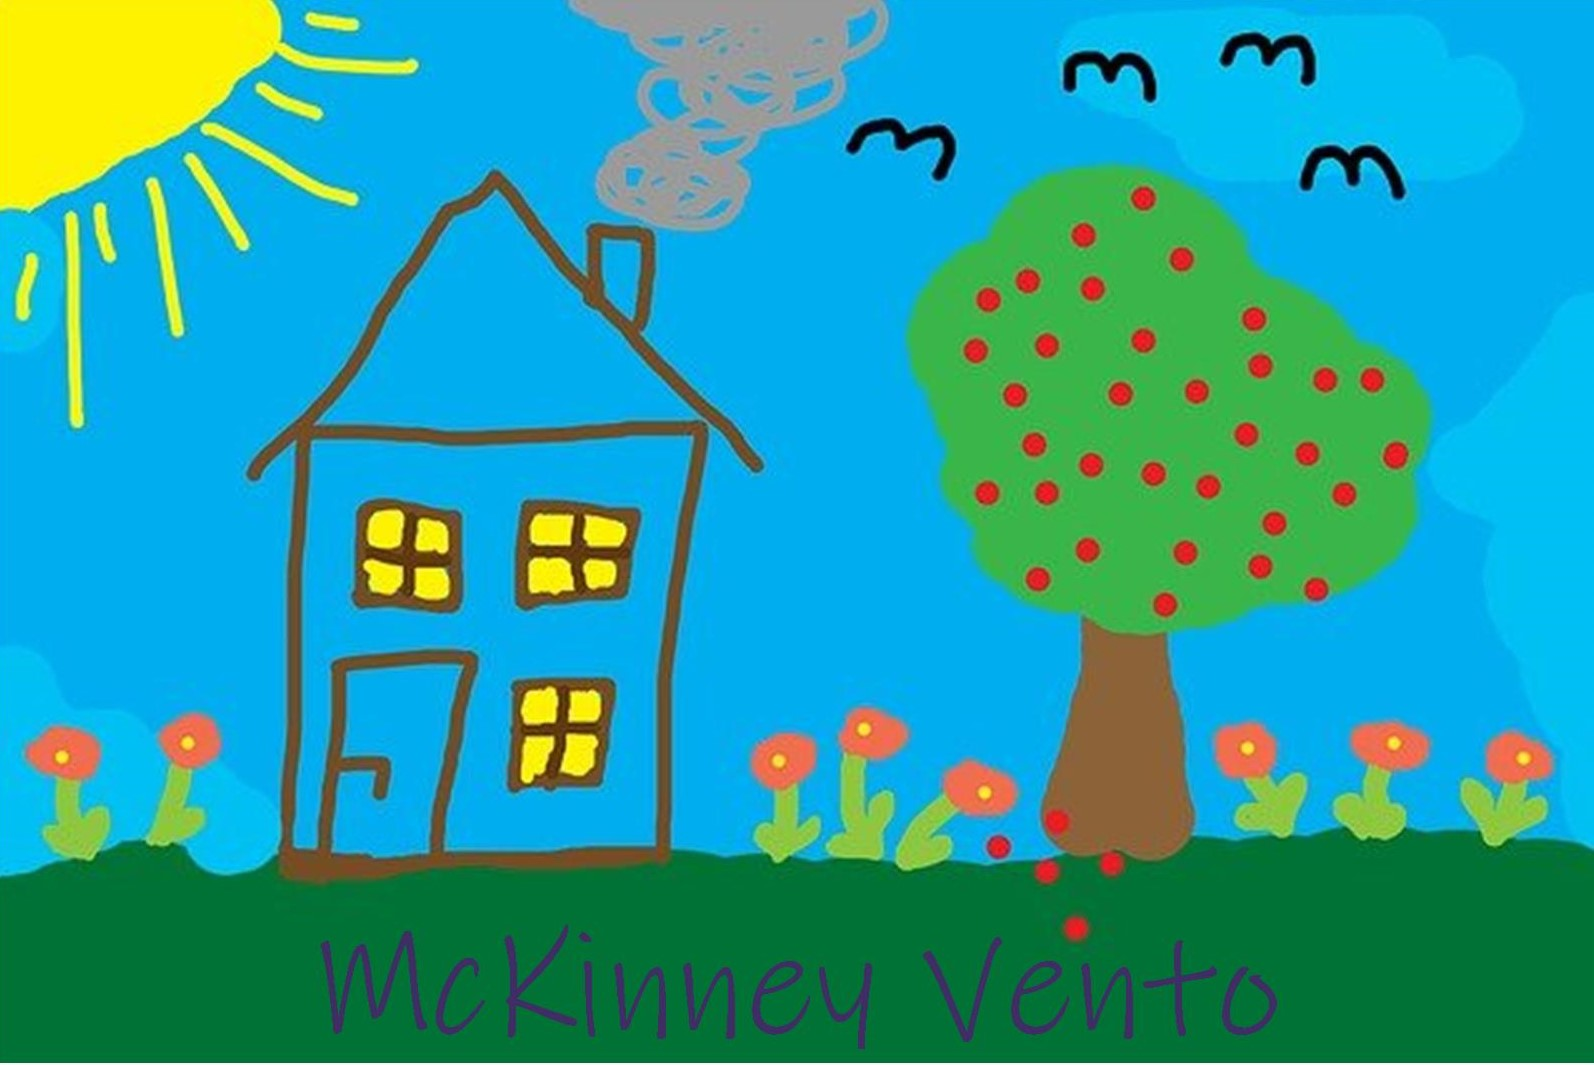 Childlike Drawing of a House In a Field with Trees, Flowers, Birds, and a Sun